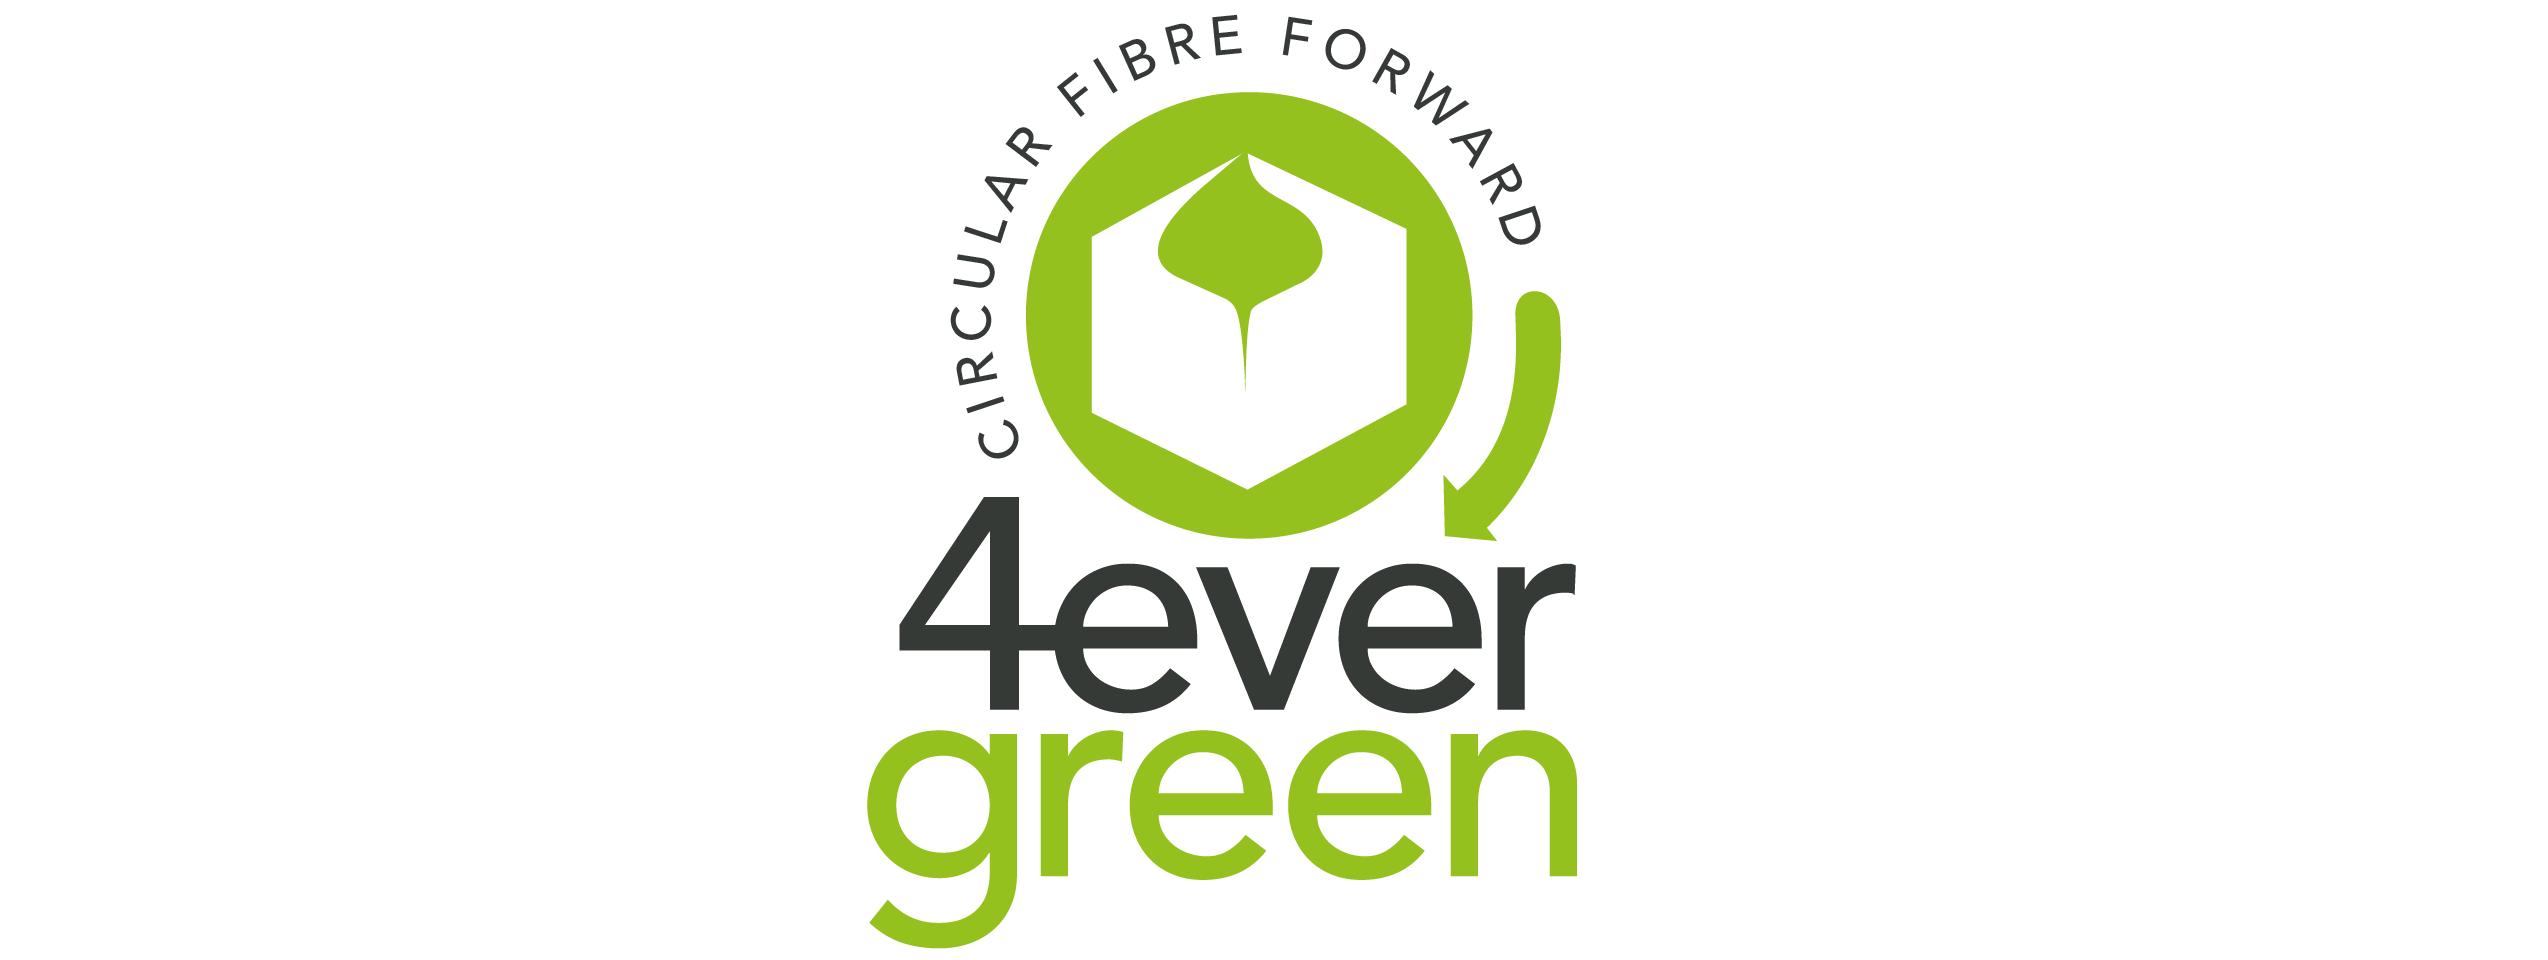 4evergreen appoint Programme Director